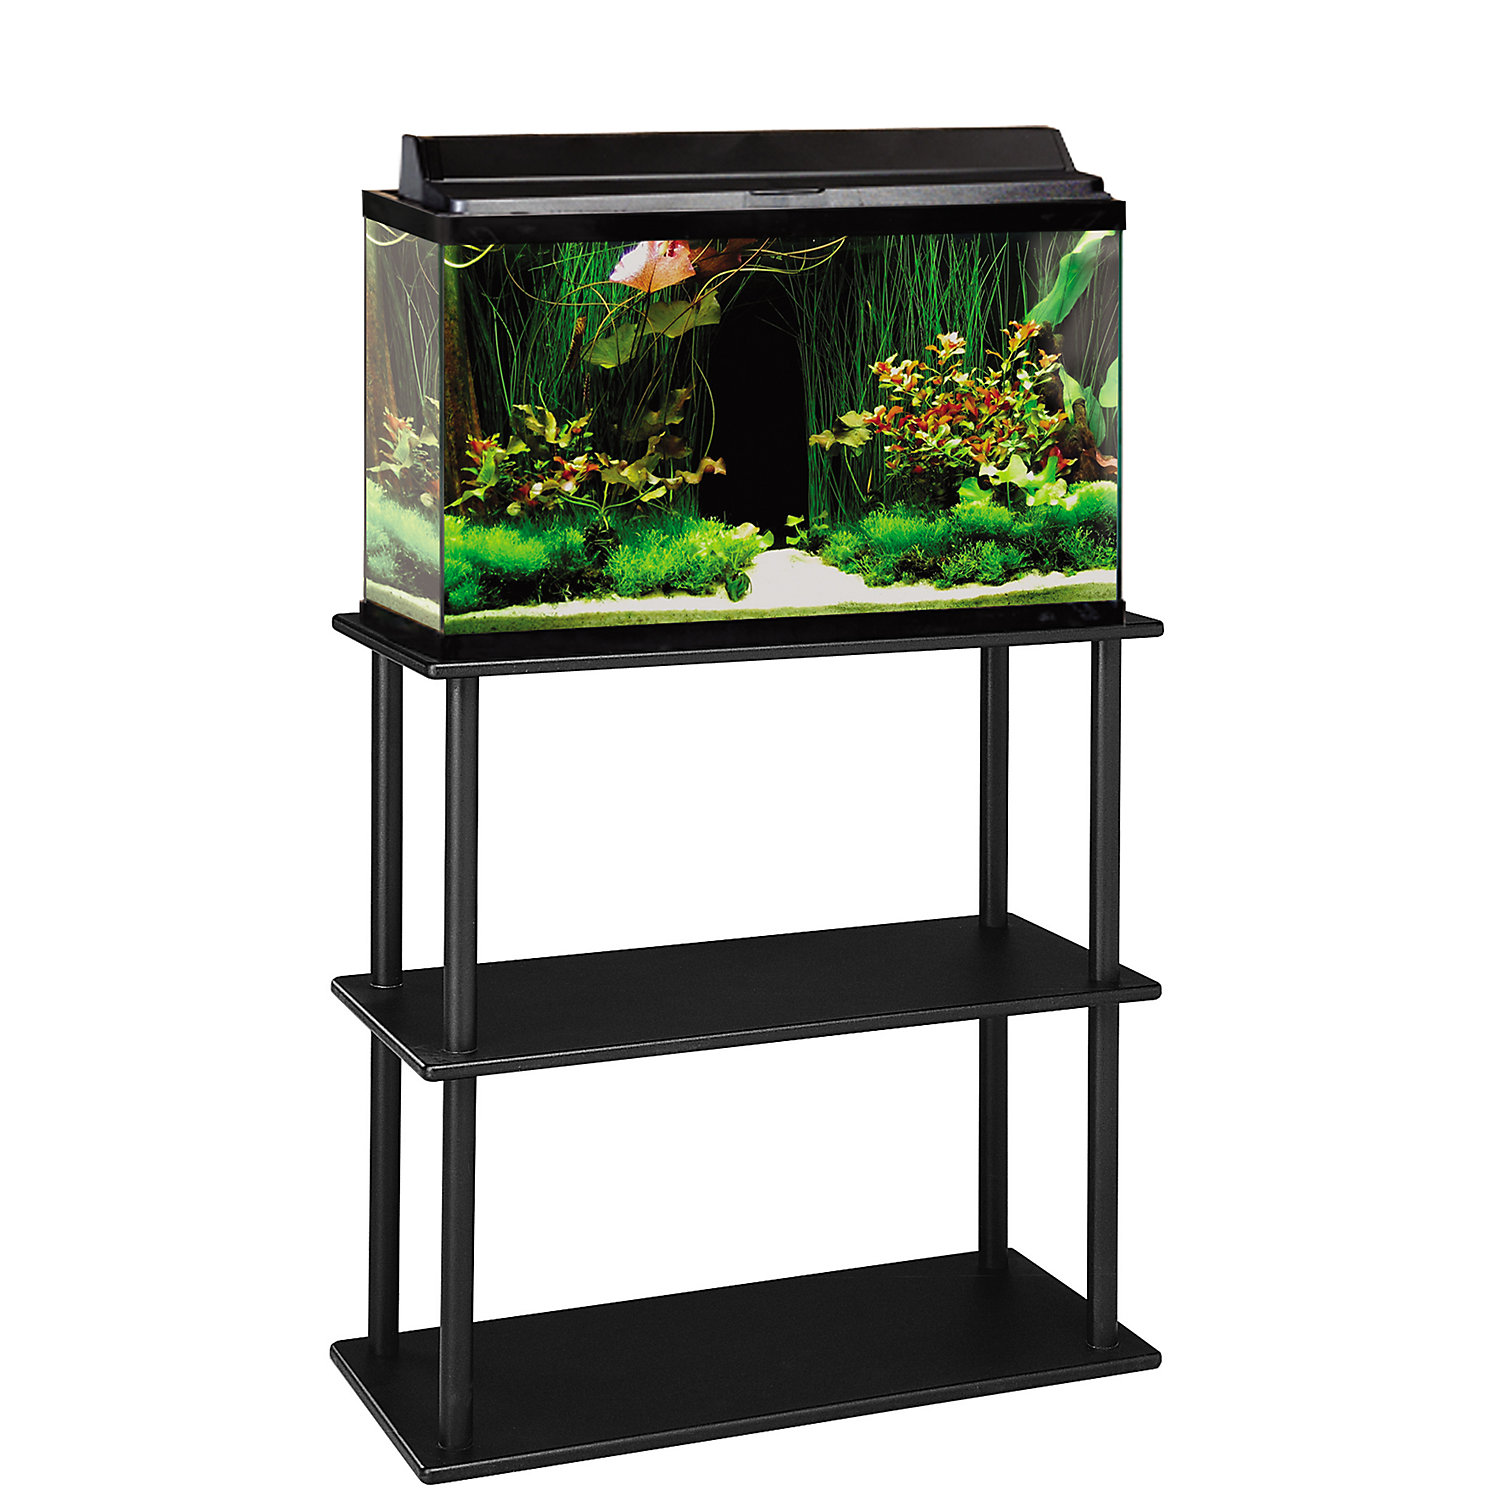 Aquatic Fundamentals 20/29/37 Gallon Aquarium Stand With Shelf Black